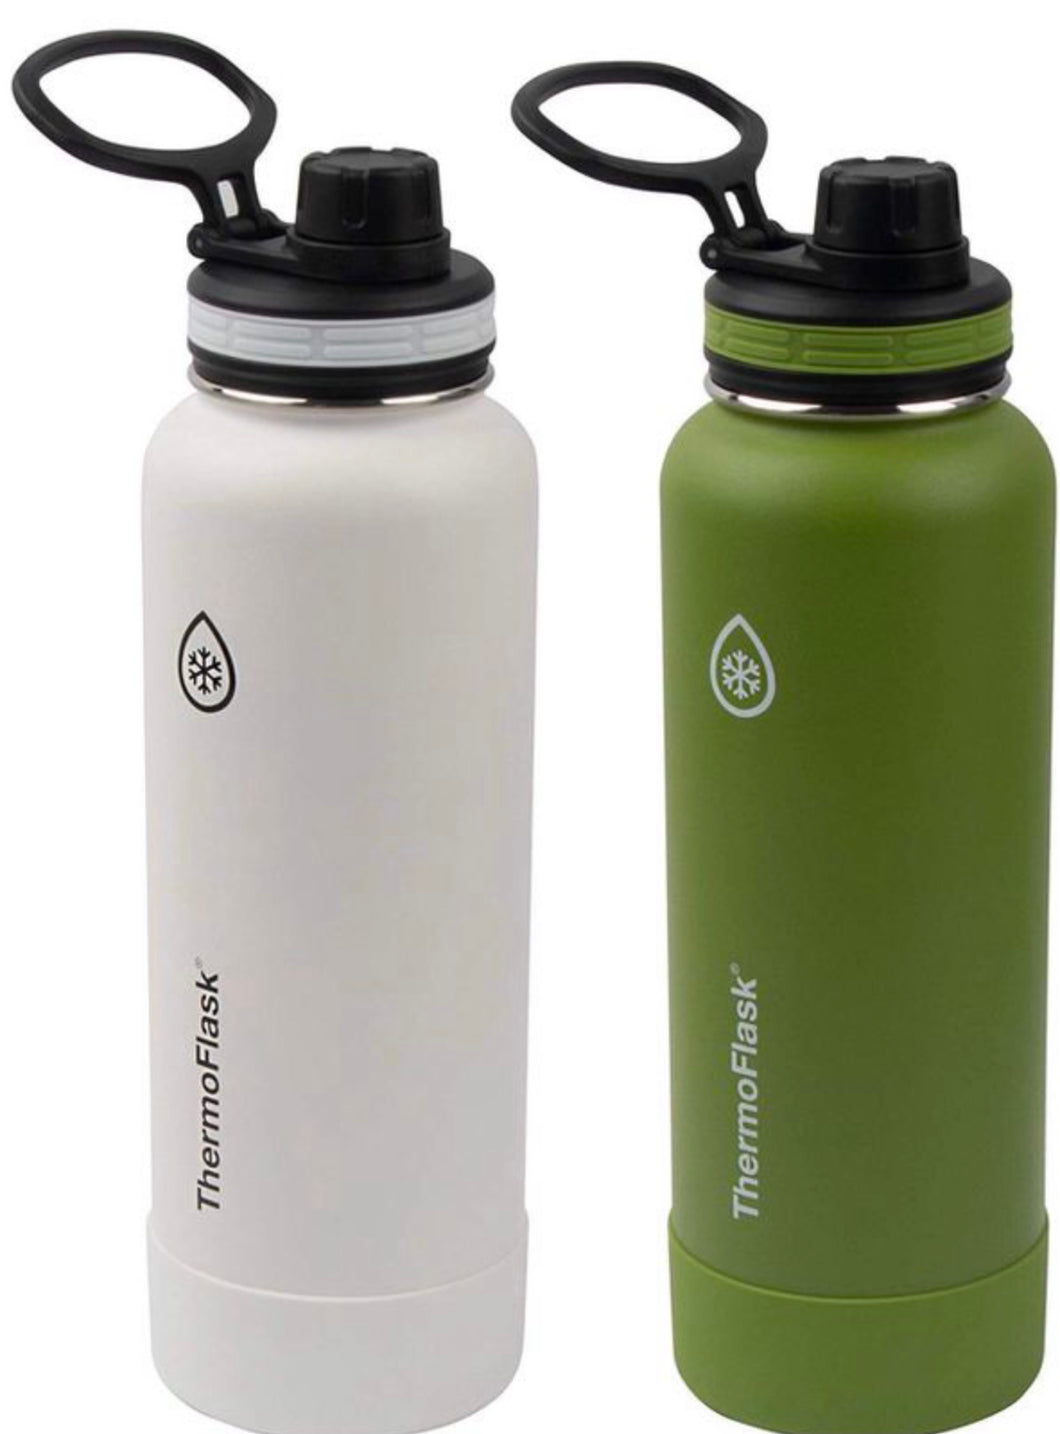 THERMOFLASK 2 PACK LIGHT WITHE/GREEN 40 OZ